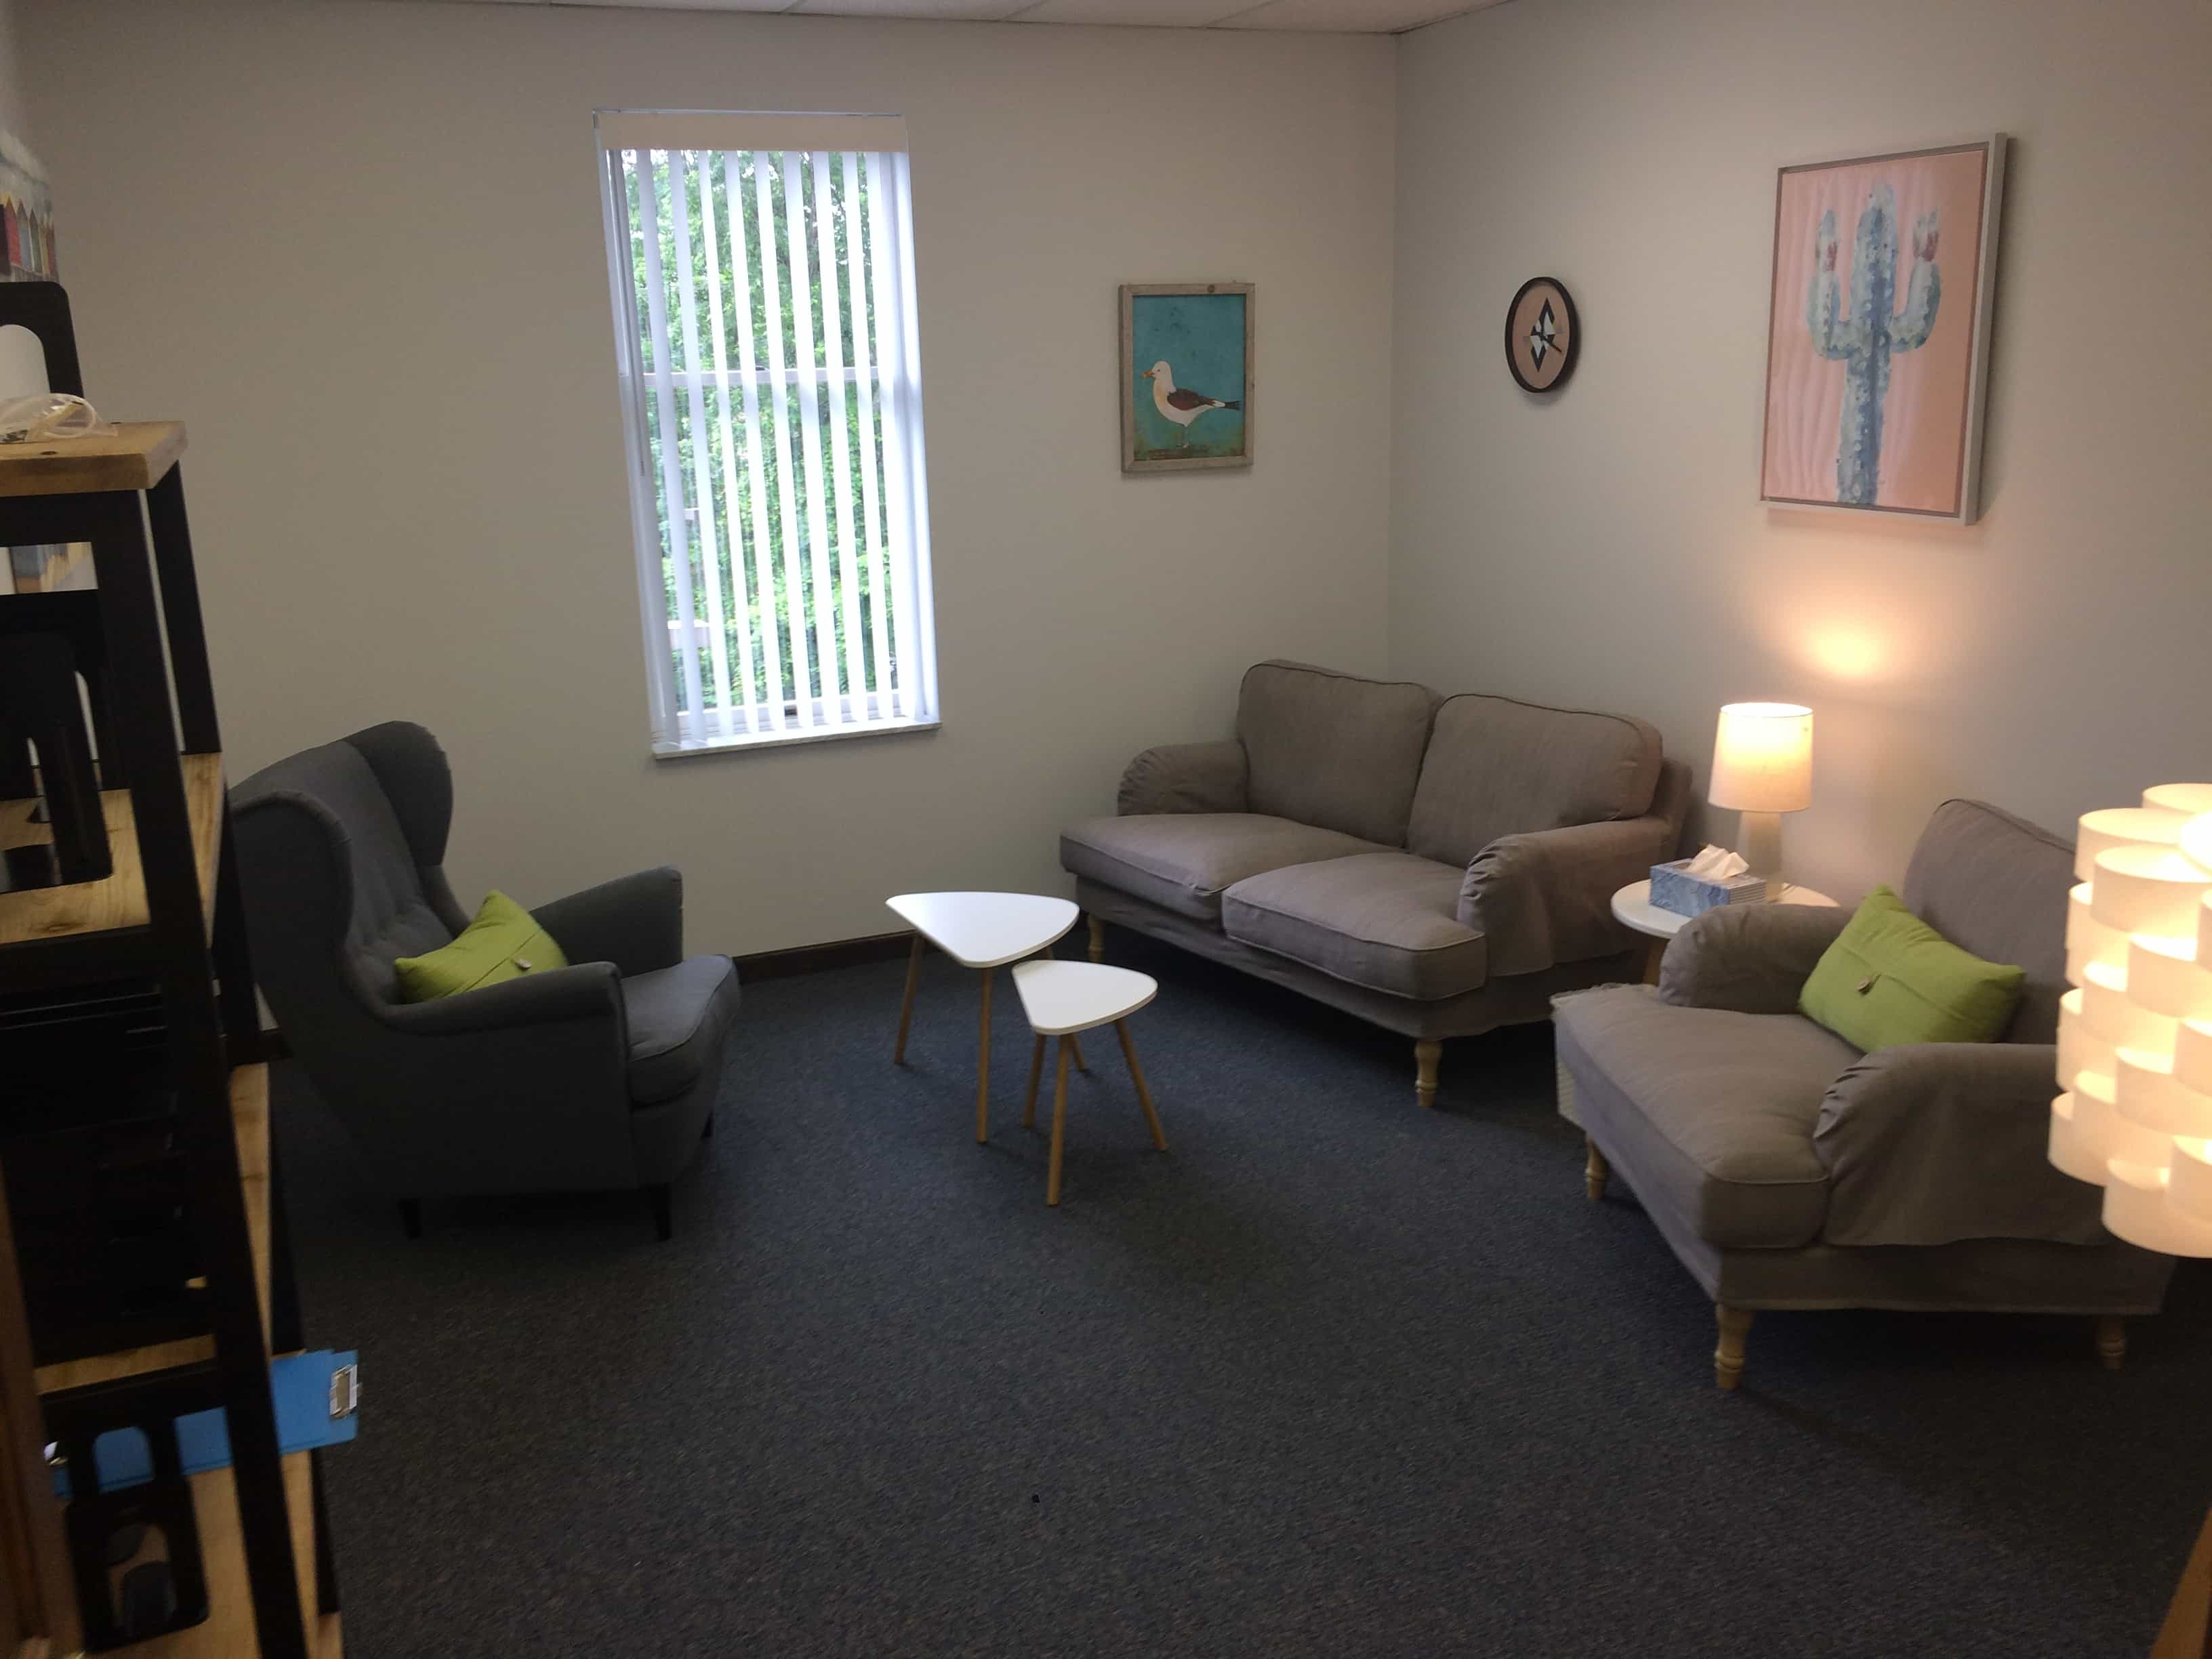 We've Officially Moved into the New Space | The Center for